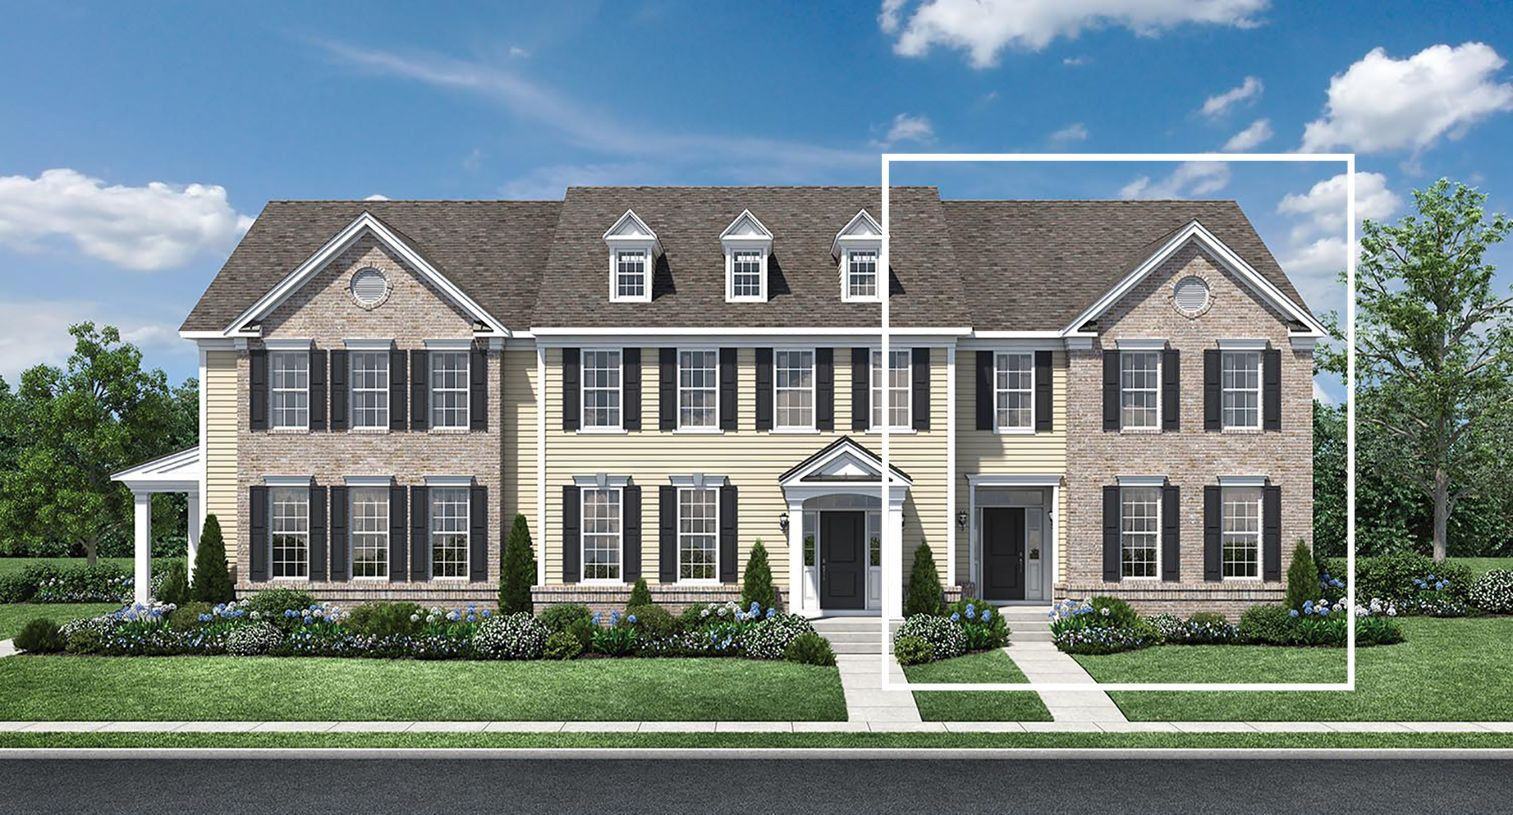 Multi Family for Sale at Enclave At Princeton Junction - Fenwood 43 Old Bear Brook Road Princeton, New Jersey 08540 United States